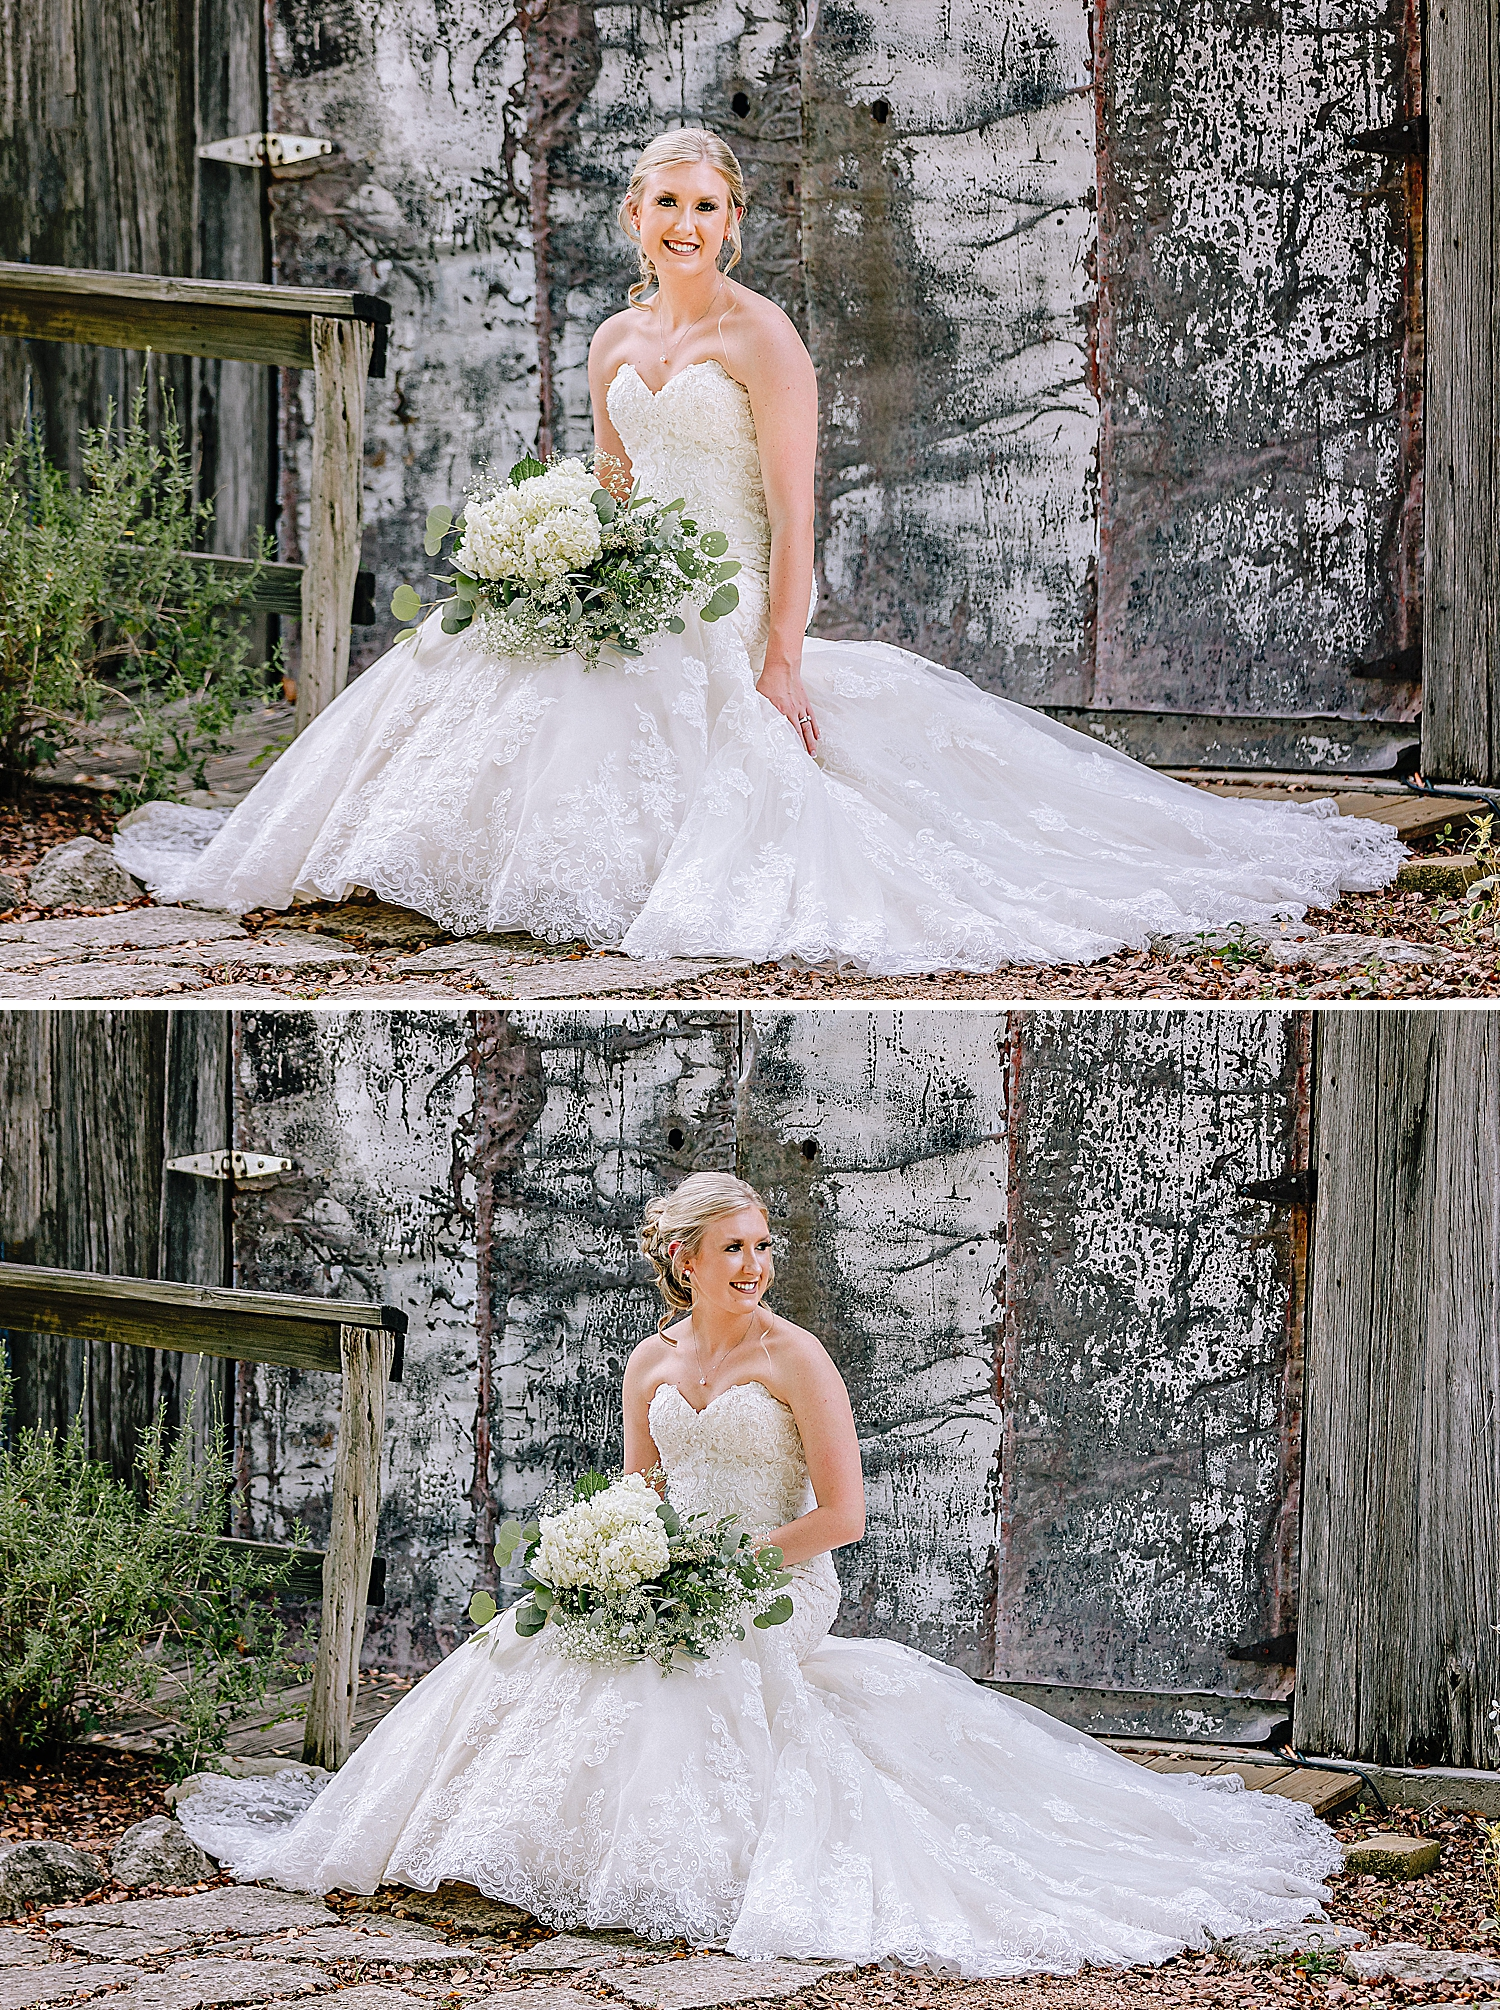 Carly-Barton-Photography-Bridal-Photos-Gruene-Rustic-New-Braunfels-Wedding-Photographer_0025.jpg